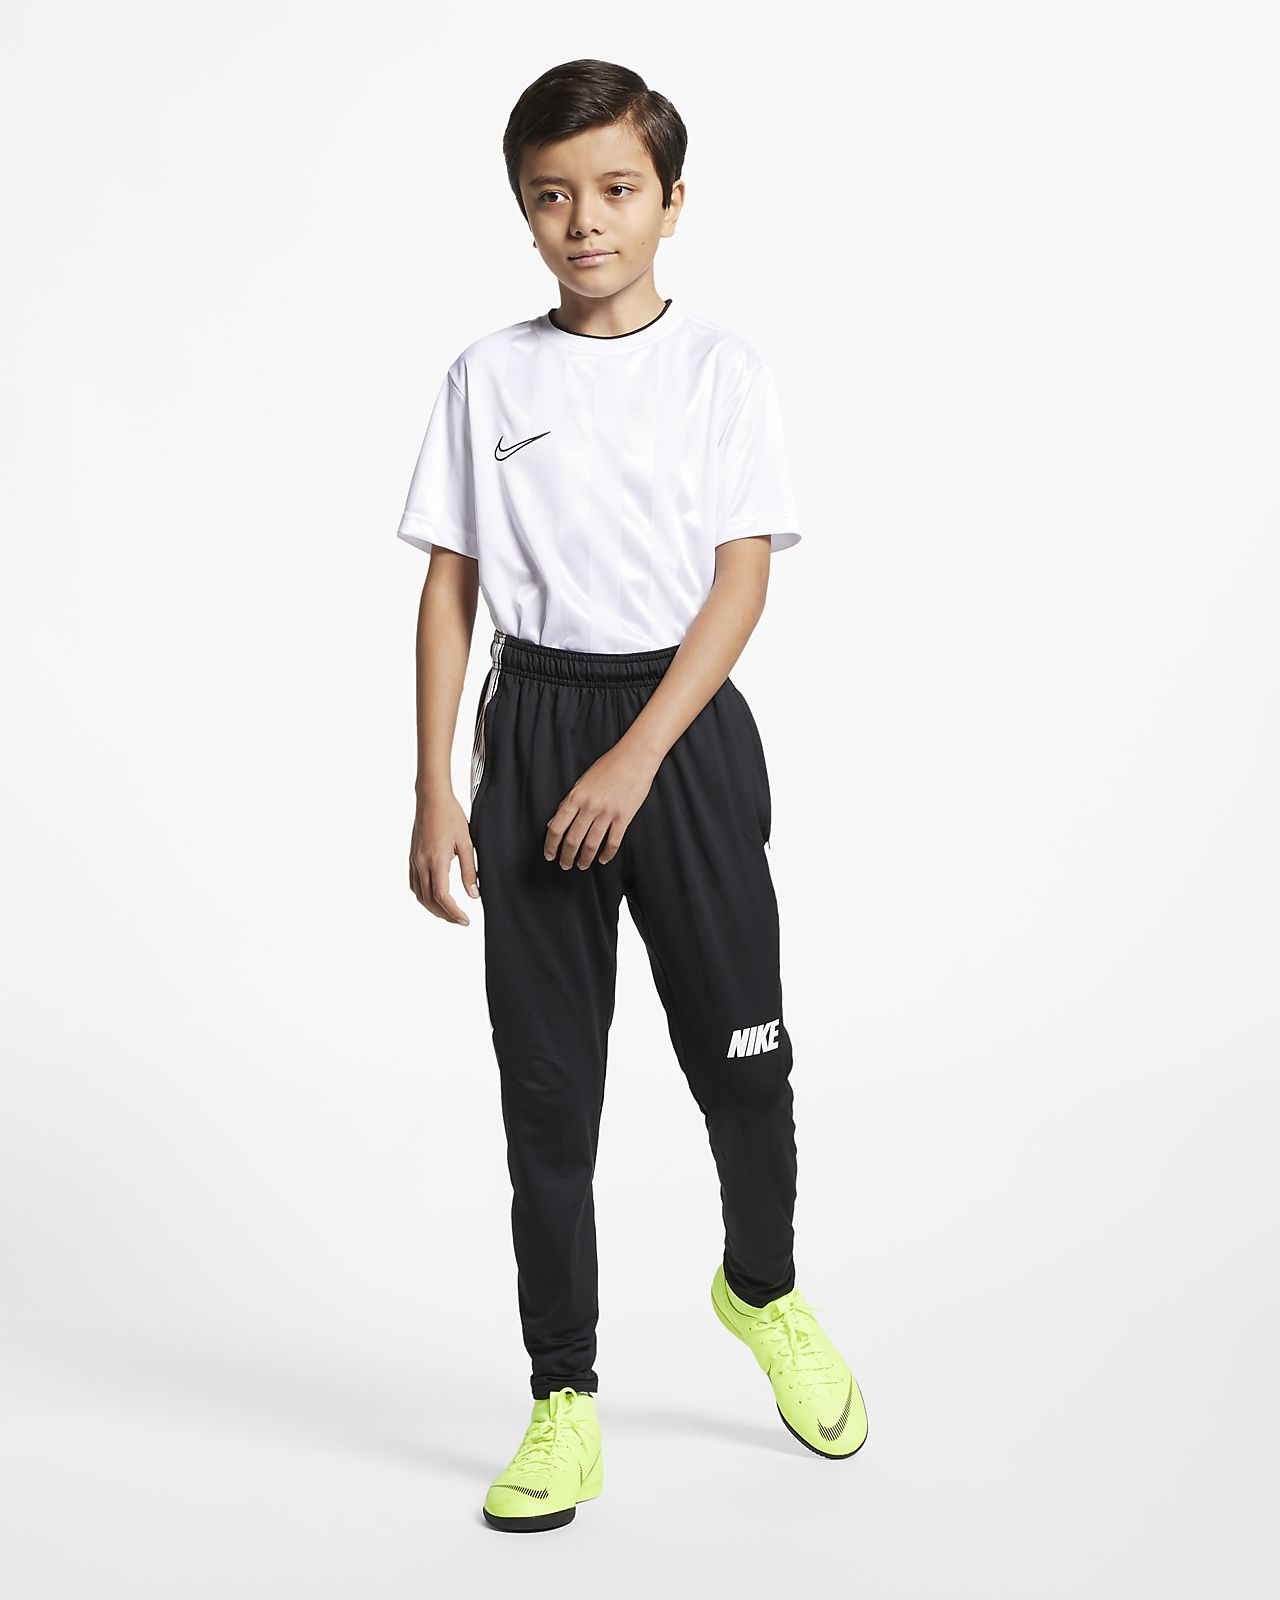 Inclinarse bolso regla  Nike Dri-FIT Squad Older Kids' Football Pants. Nike NO